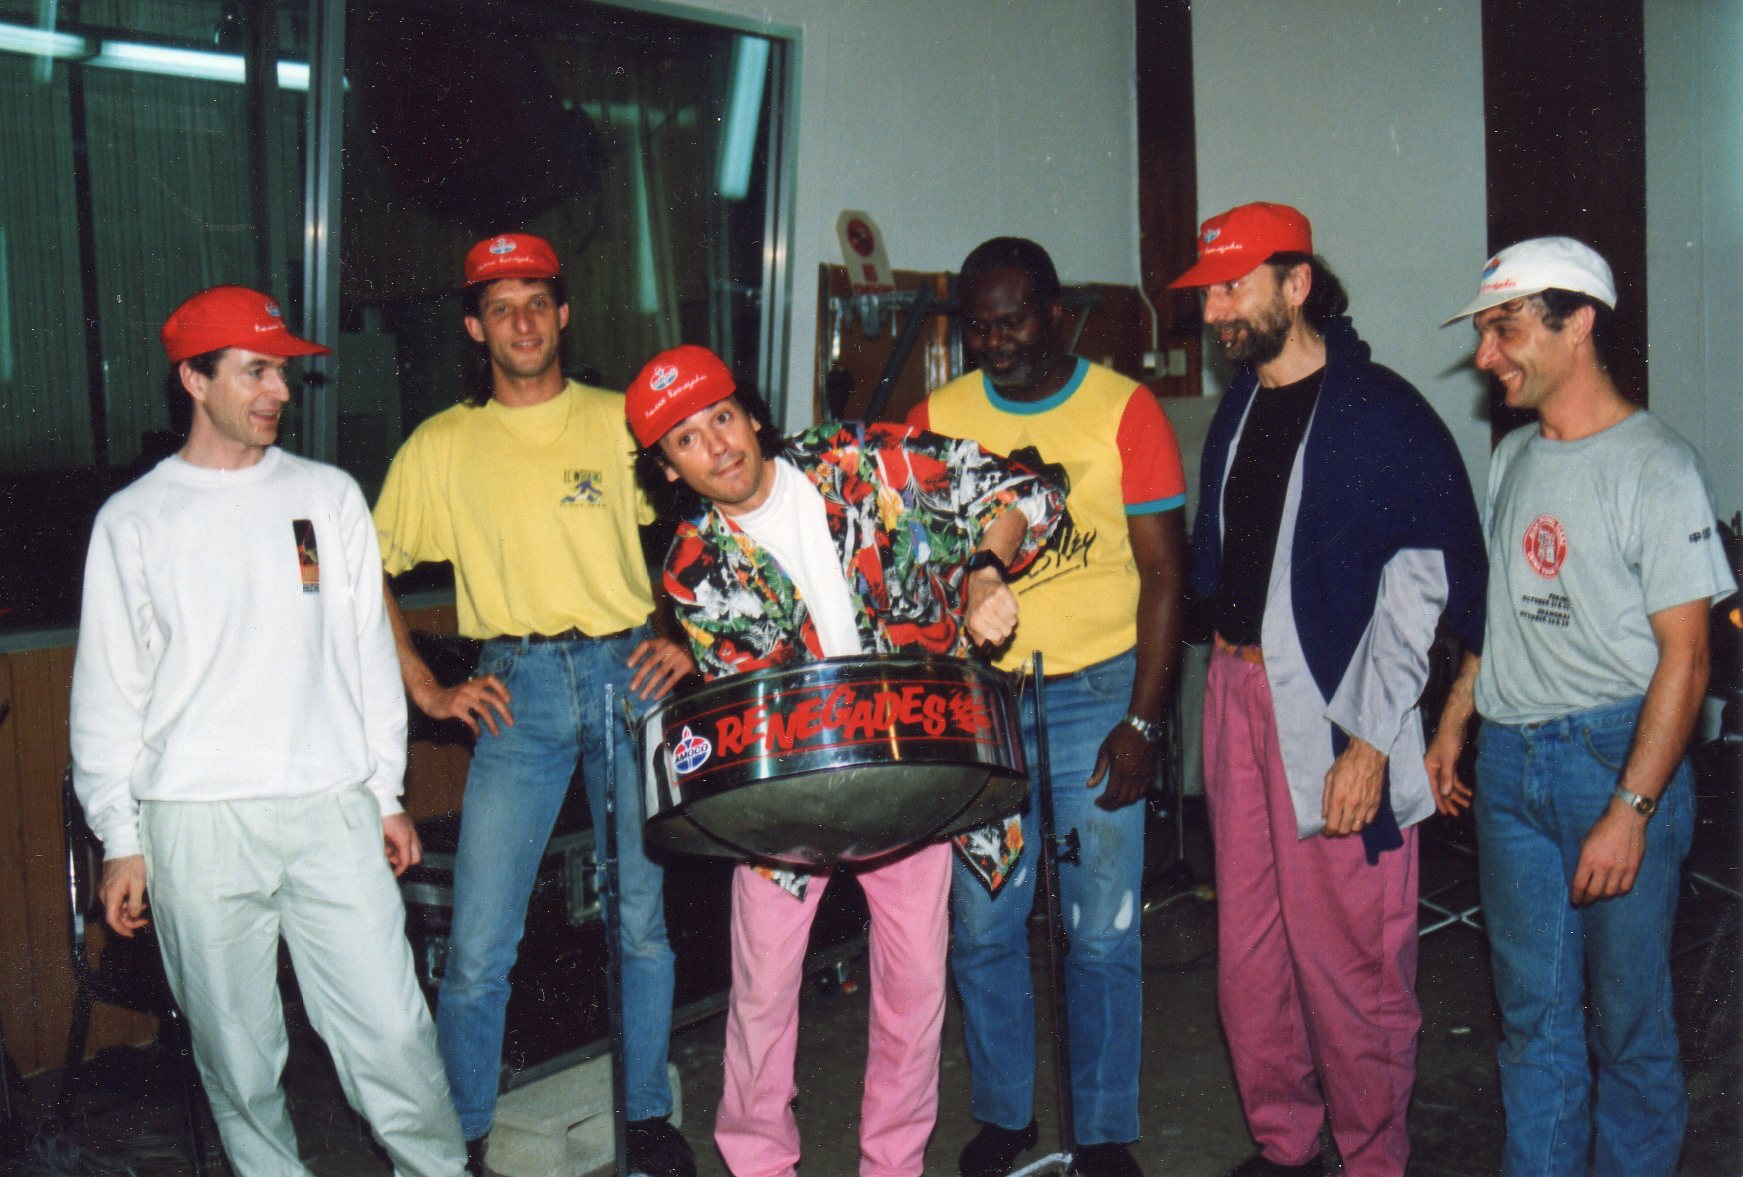 : In Trinidad studio during the recordings of the Amocco Renegades. Left to Right : MG, Denis Vanzetto, JMJ, the studio owner, Dominique Perrier, Patrick Pelamourgues